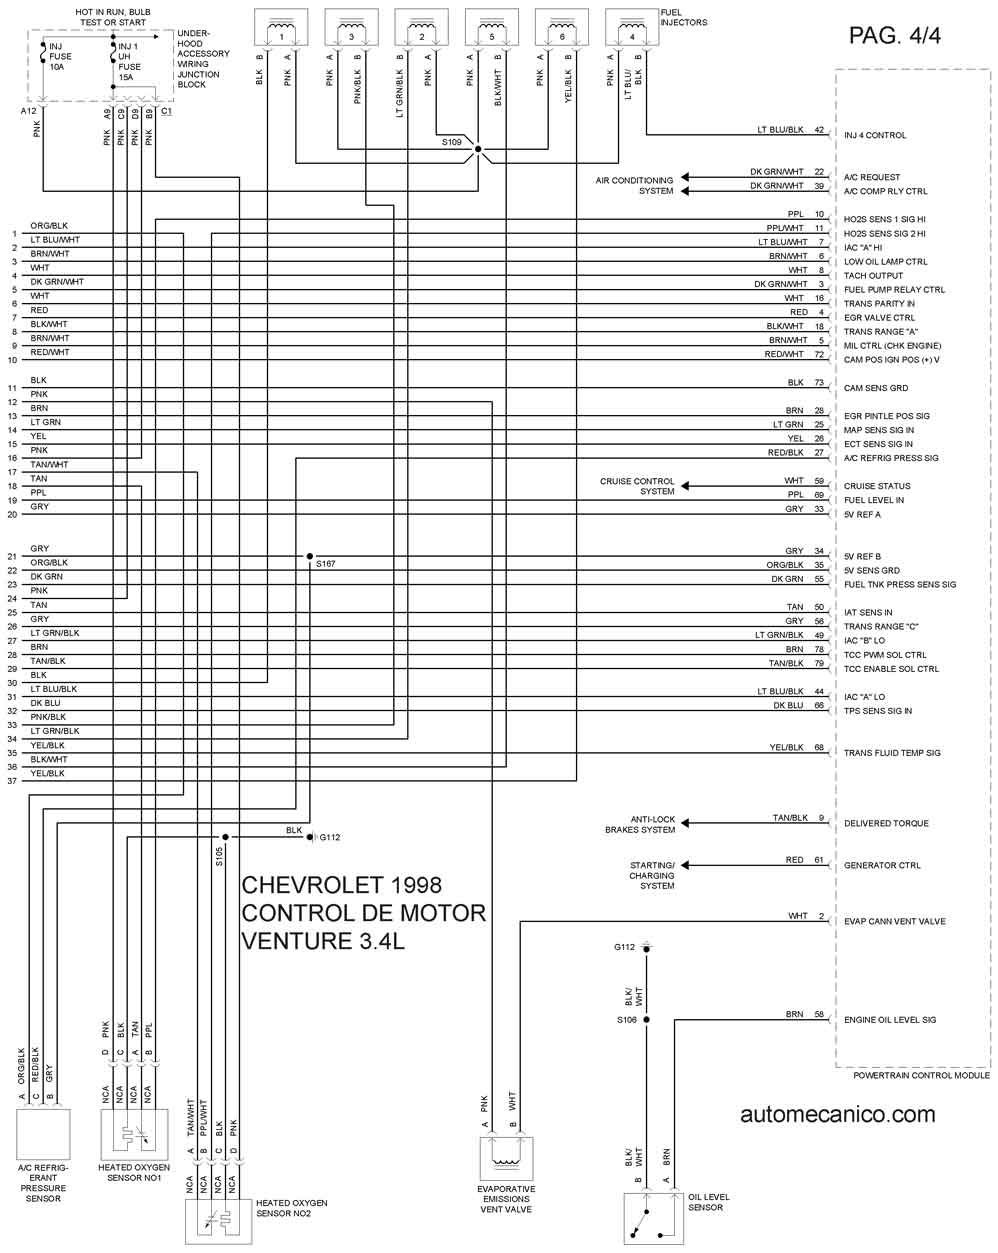 2000 Dodge Grand Caravan Fuse Box Diagram